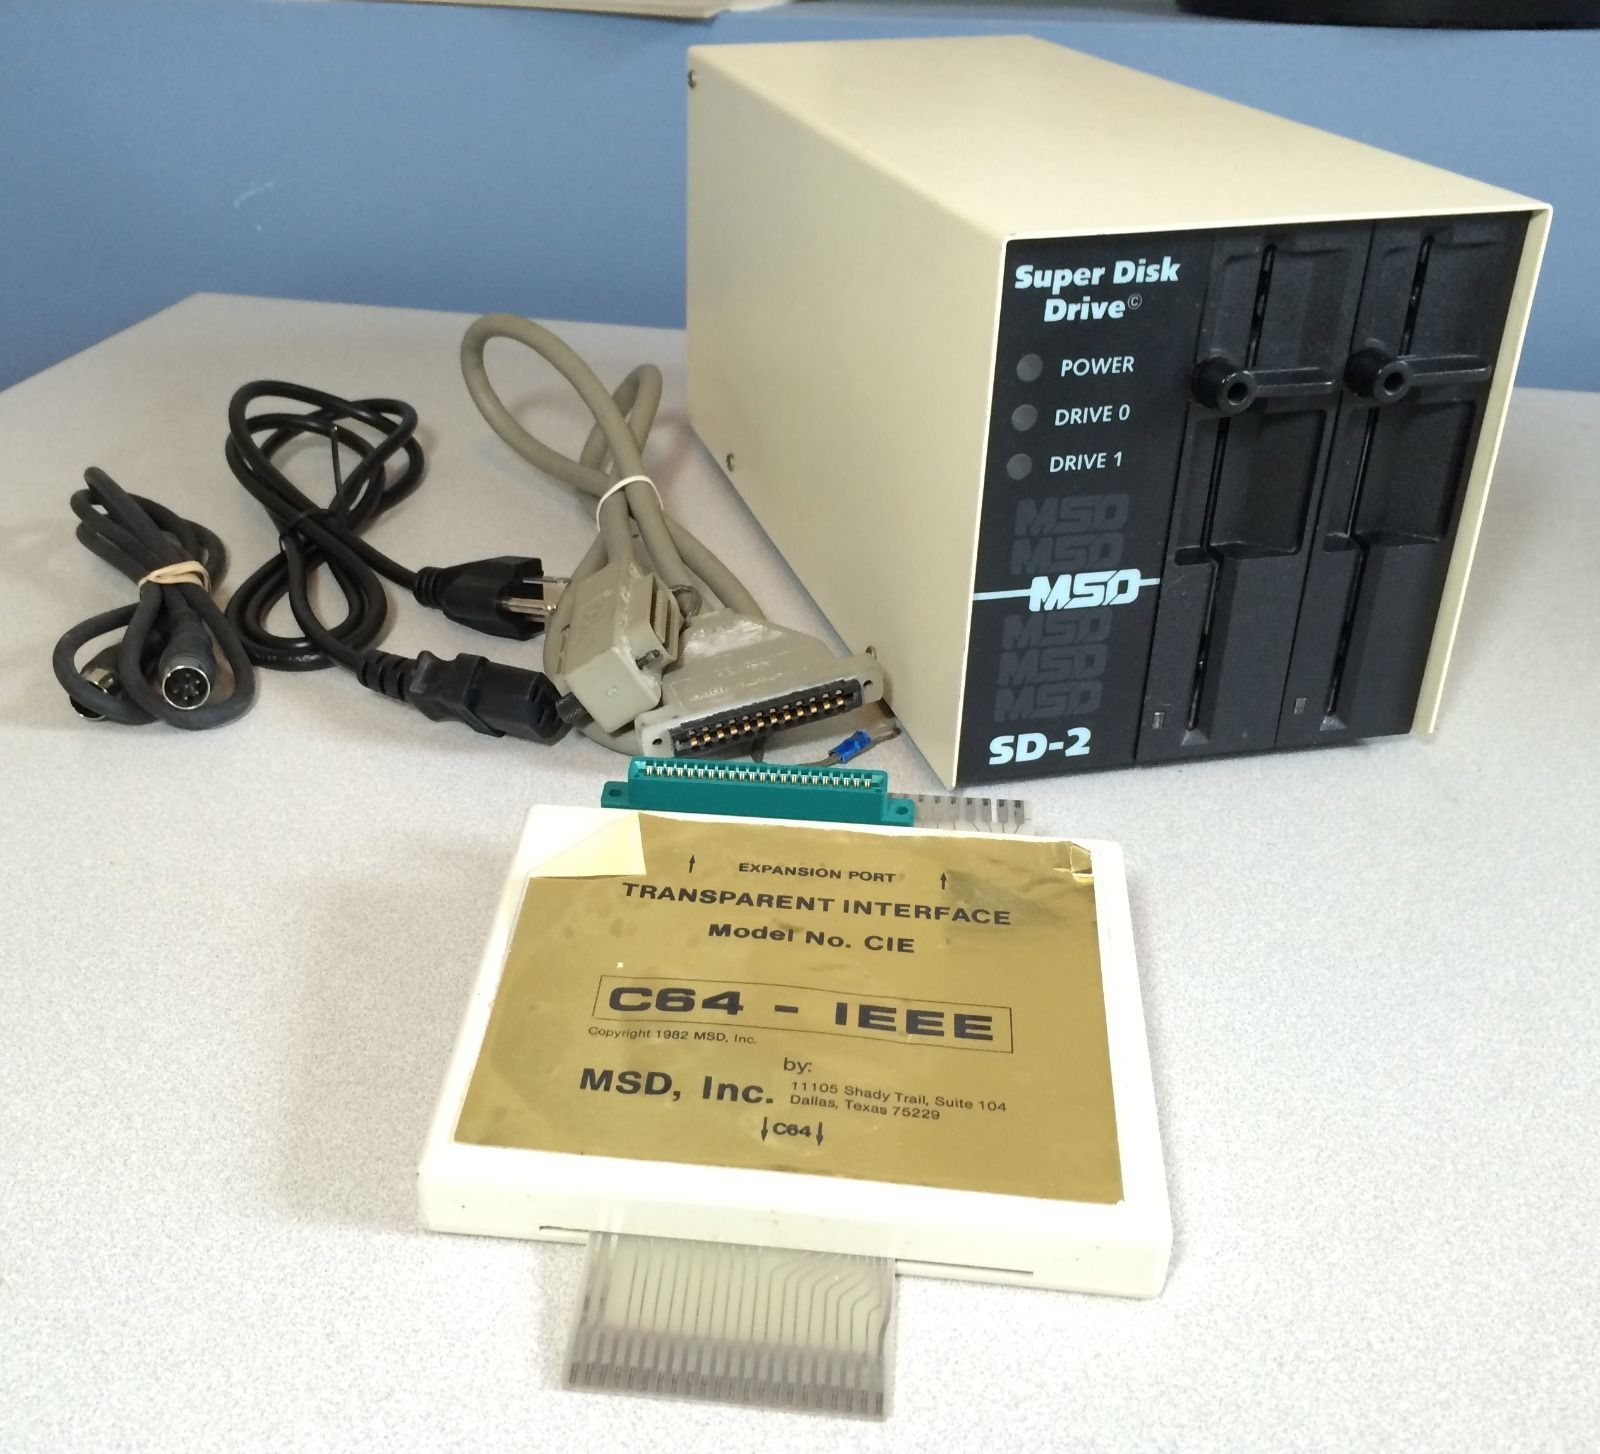 MSD SD 2 Super Disk Drive and CIE IEEE 488 cartridge